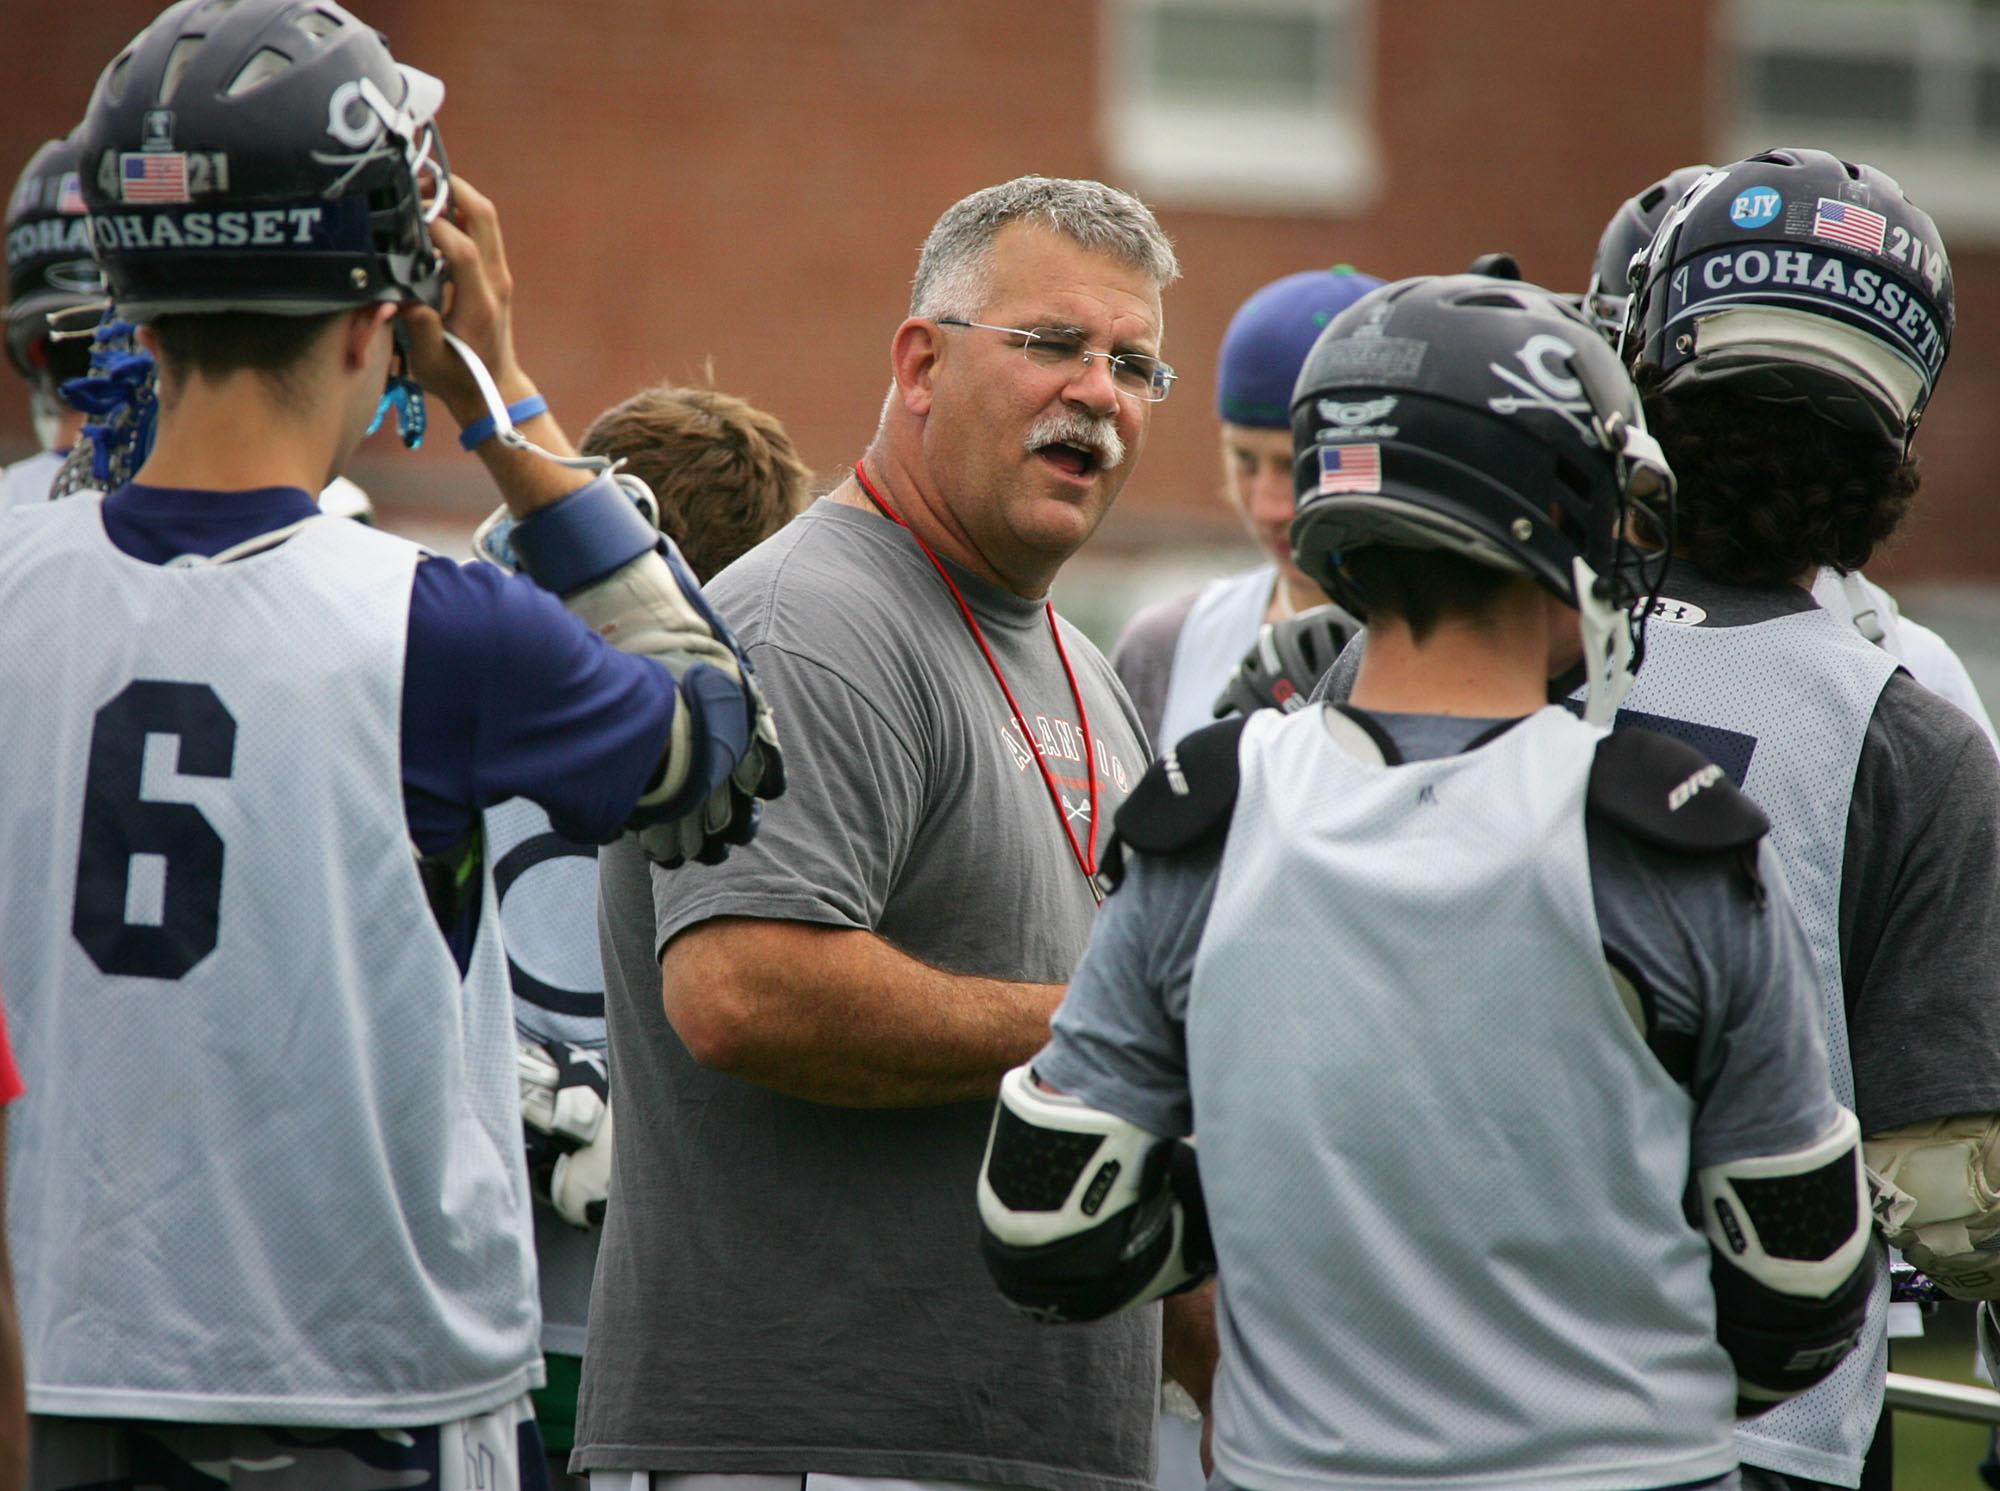 After Massachusetts lacrosse legend Stew Curran was diagnosed with brain cancer, PrimeTime Lacrosse launched the #Shots4Stew campaign.